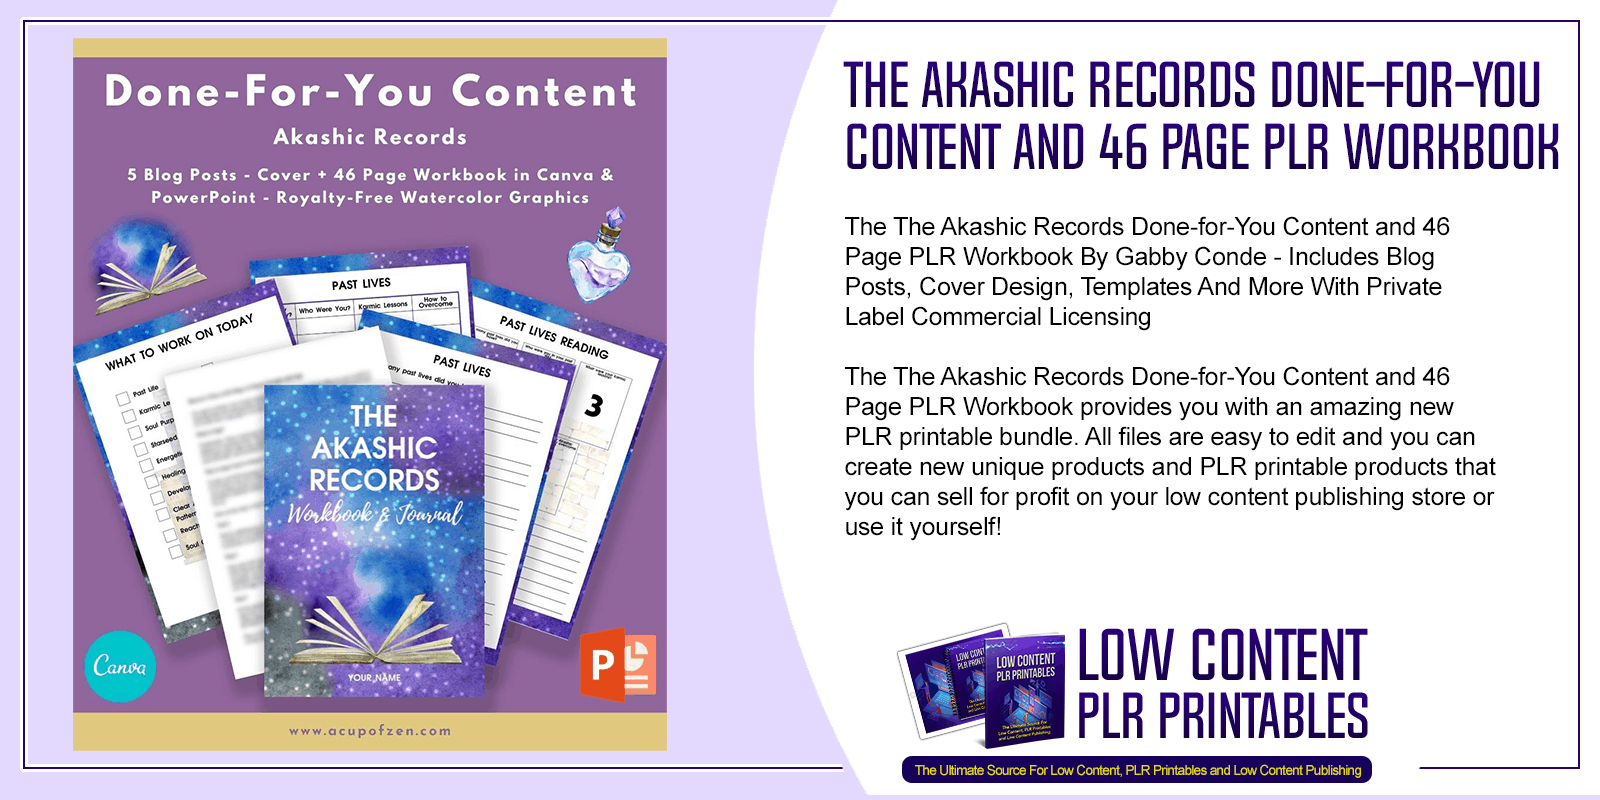 The Akashic Records Done for You Content and 46 Page PLR Workbook